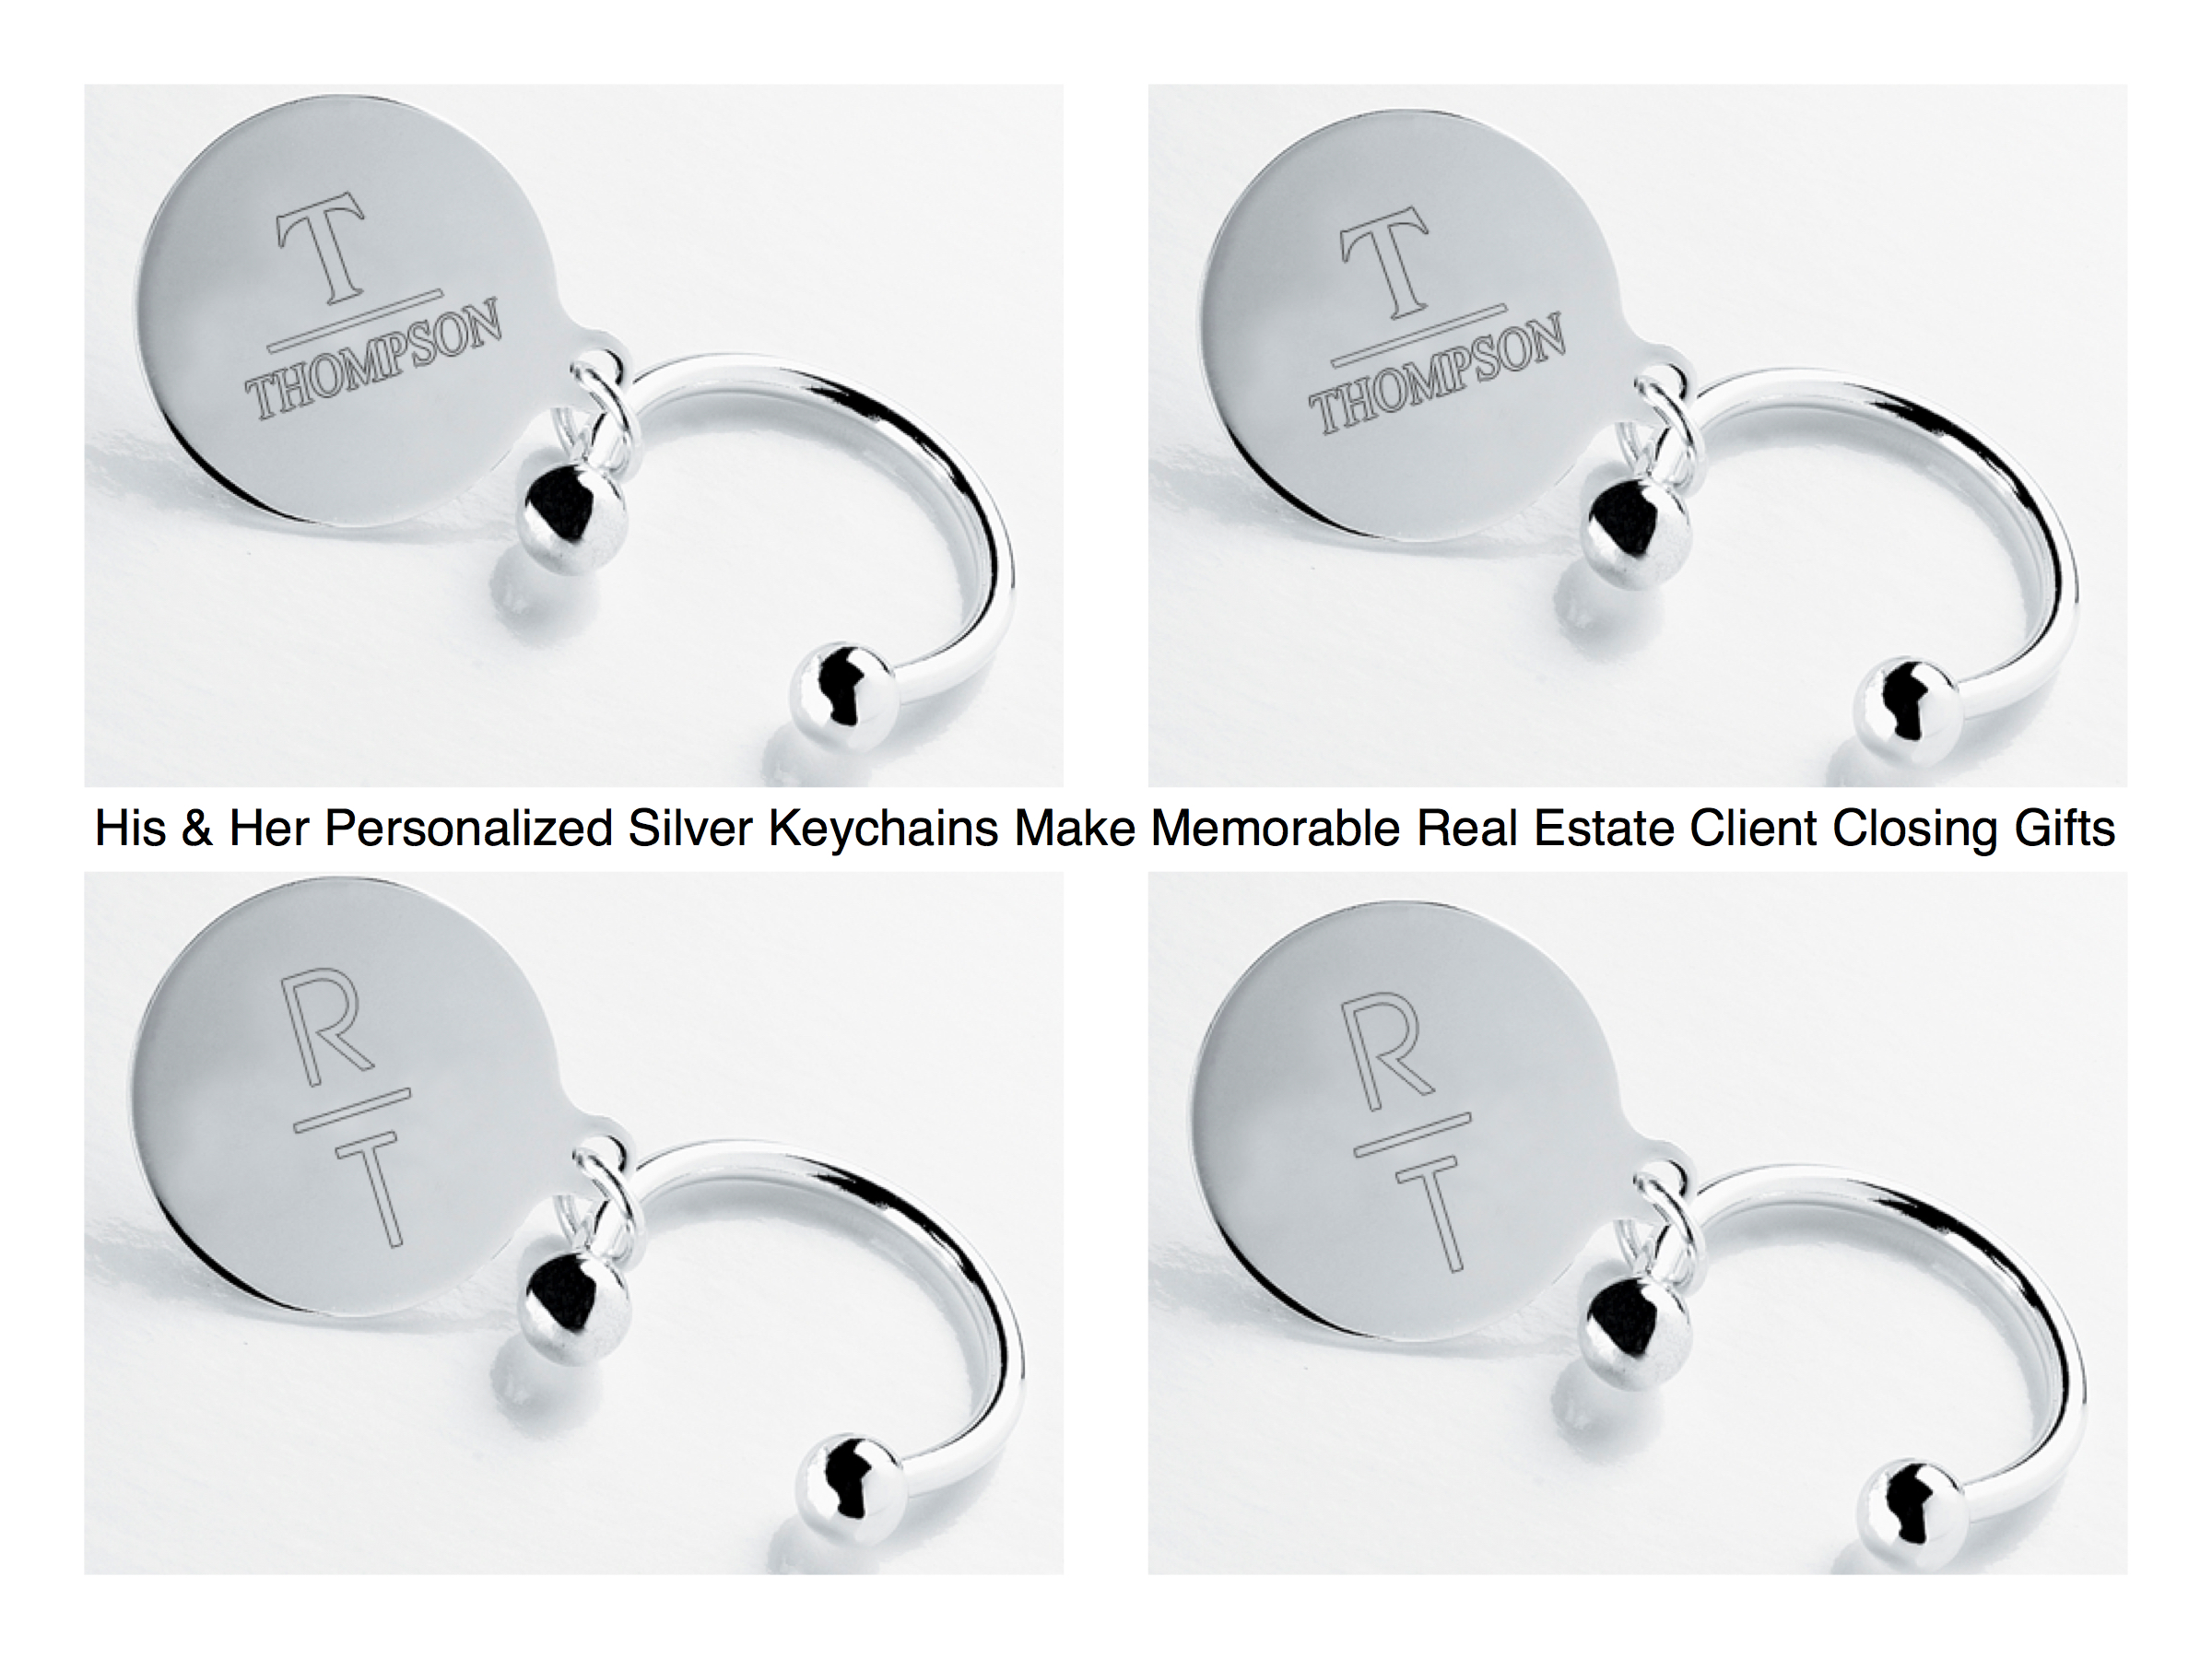 Real Estate Closing Gifts Personalized Keychains